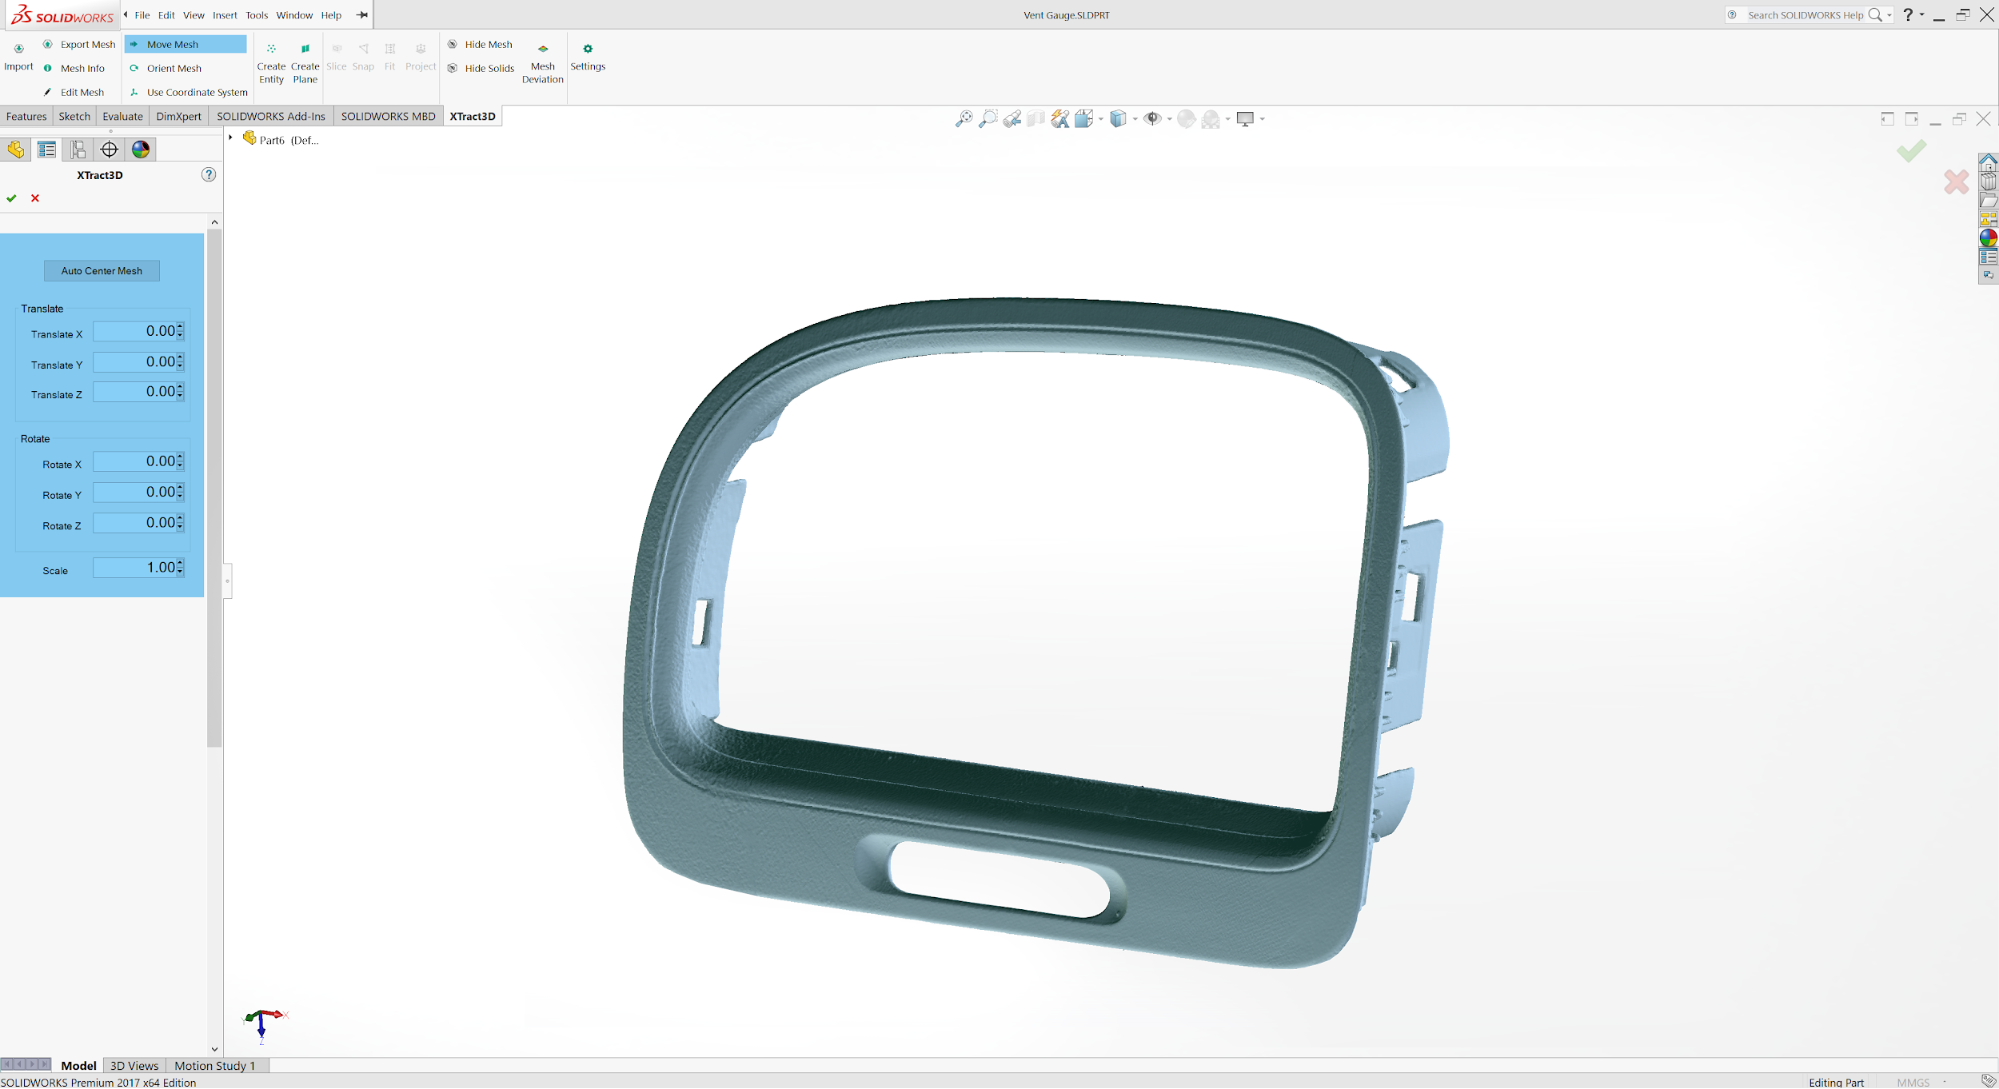 Geomagic for Solidworks screenshot showing an orthographic view